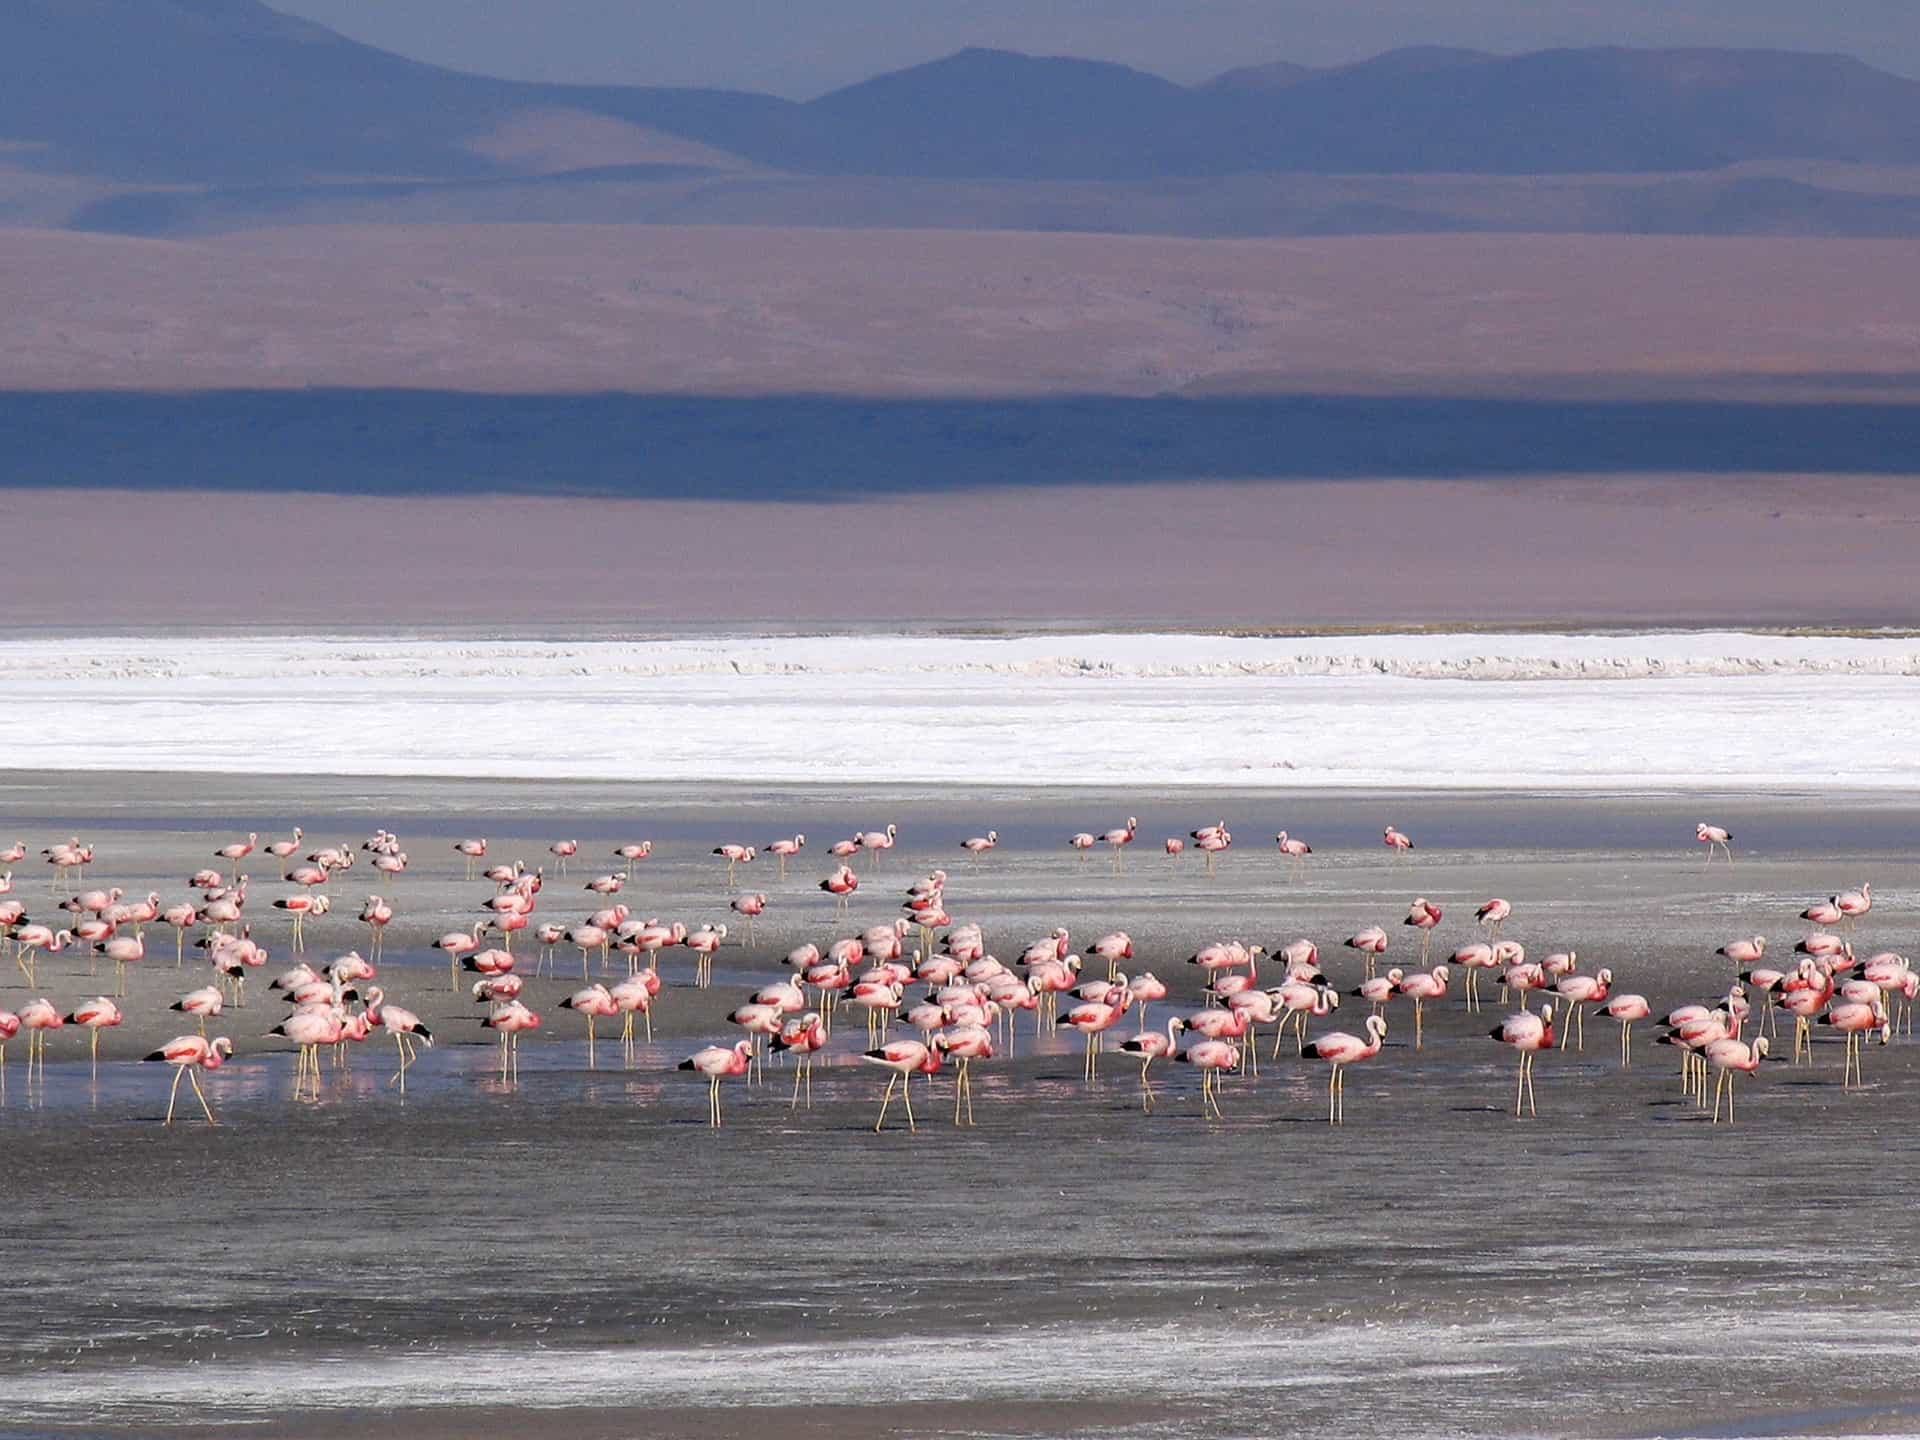 Flamingos in the shallow, salty lakes of the Andean Altiplano